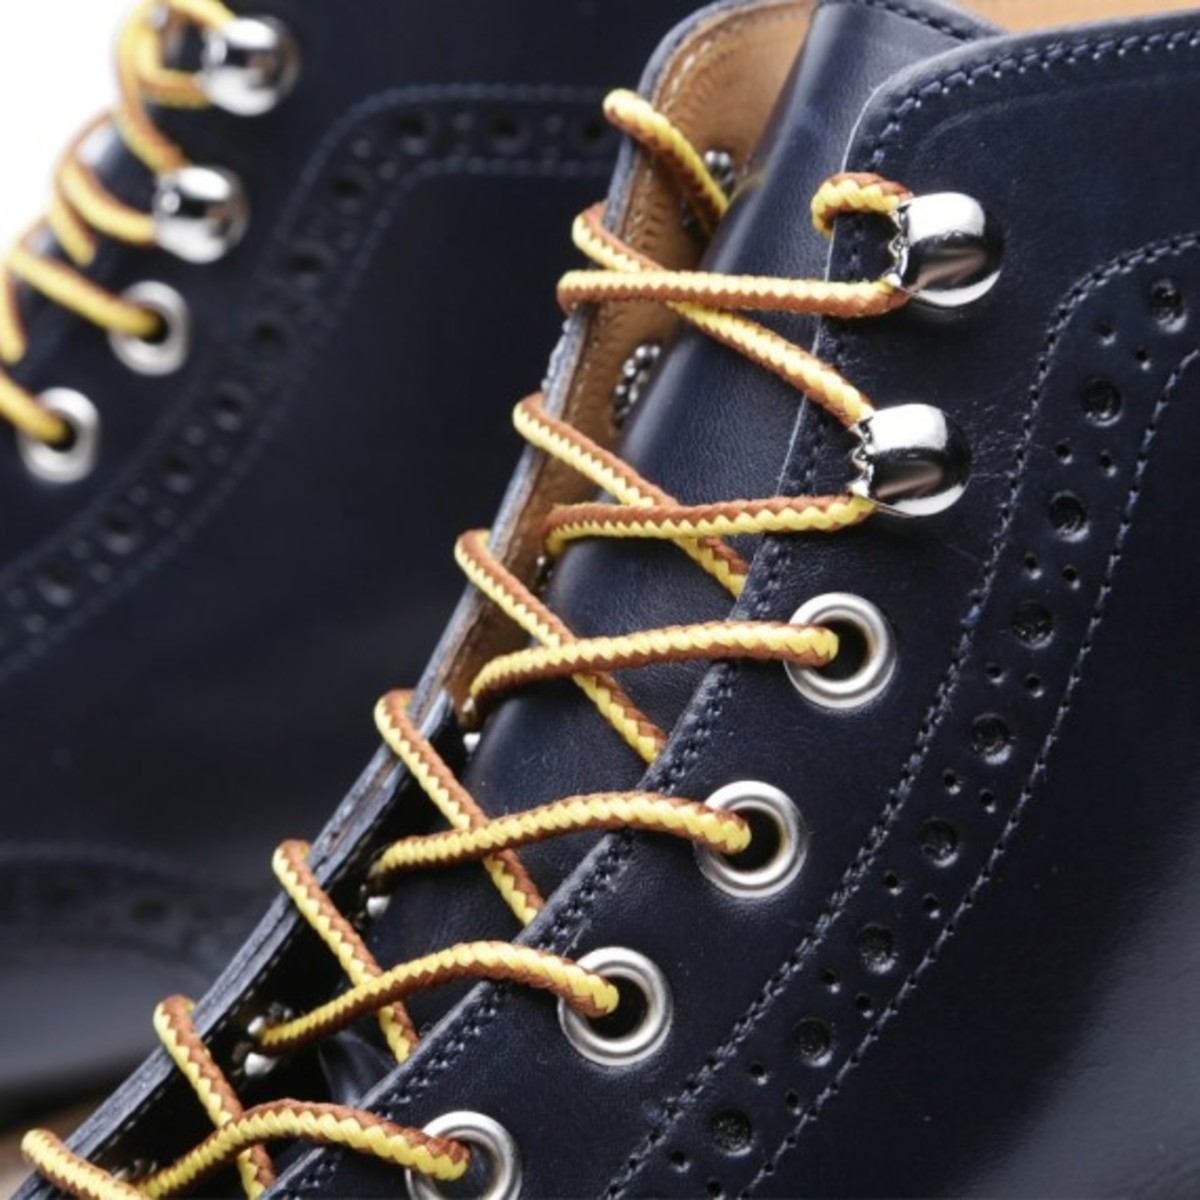 end-trickers-stow-brogue-boot-spring-2014-19